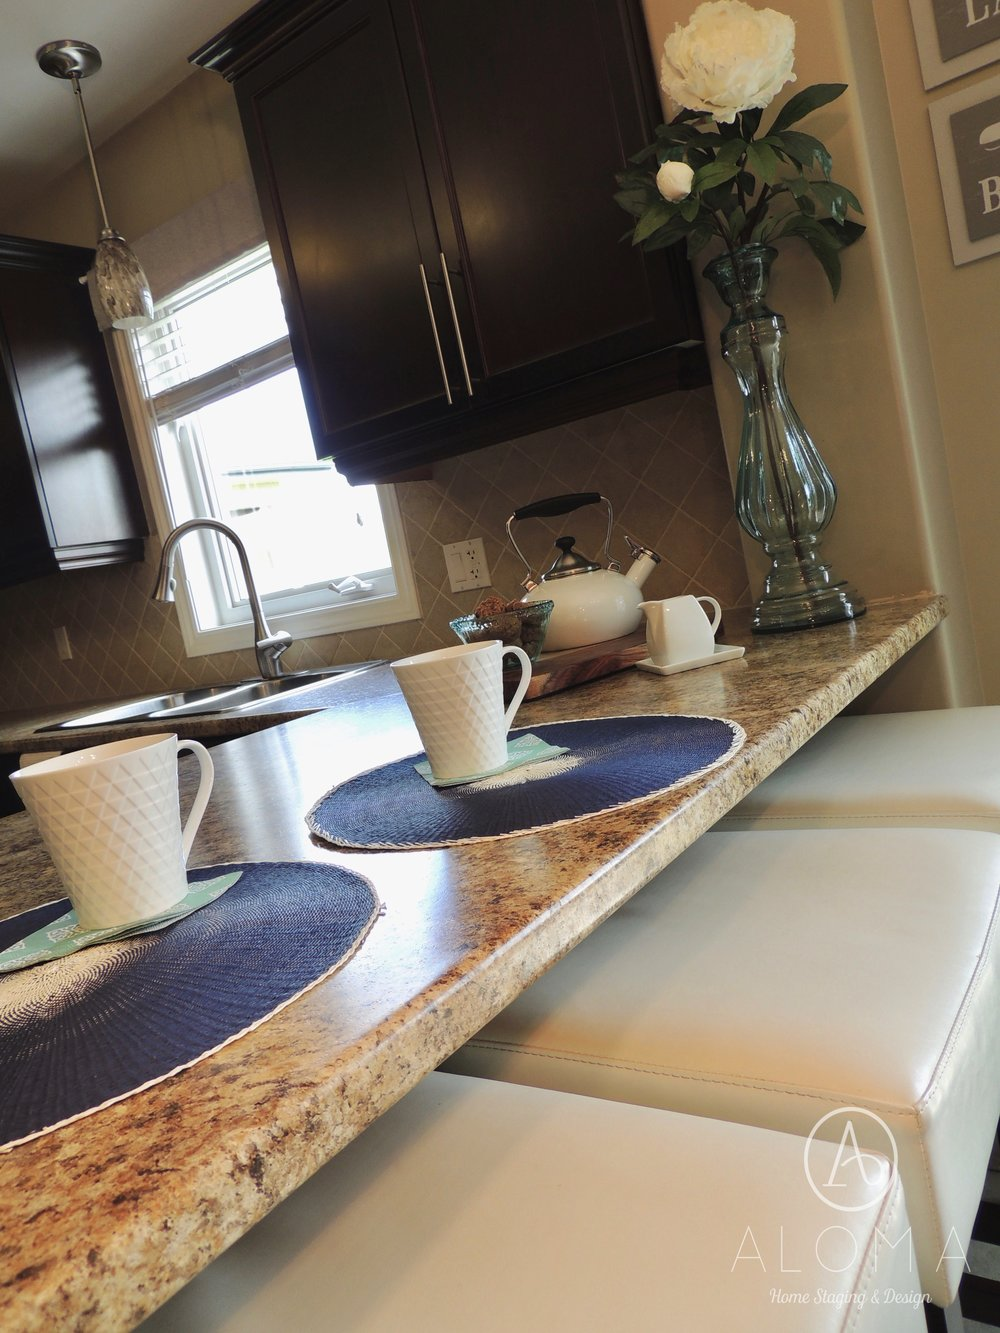 Cup of coffee- Place setting on kitchen counter by ALOMA Home Staging & Design